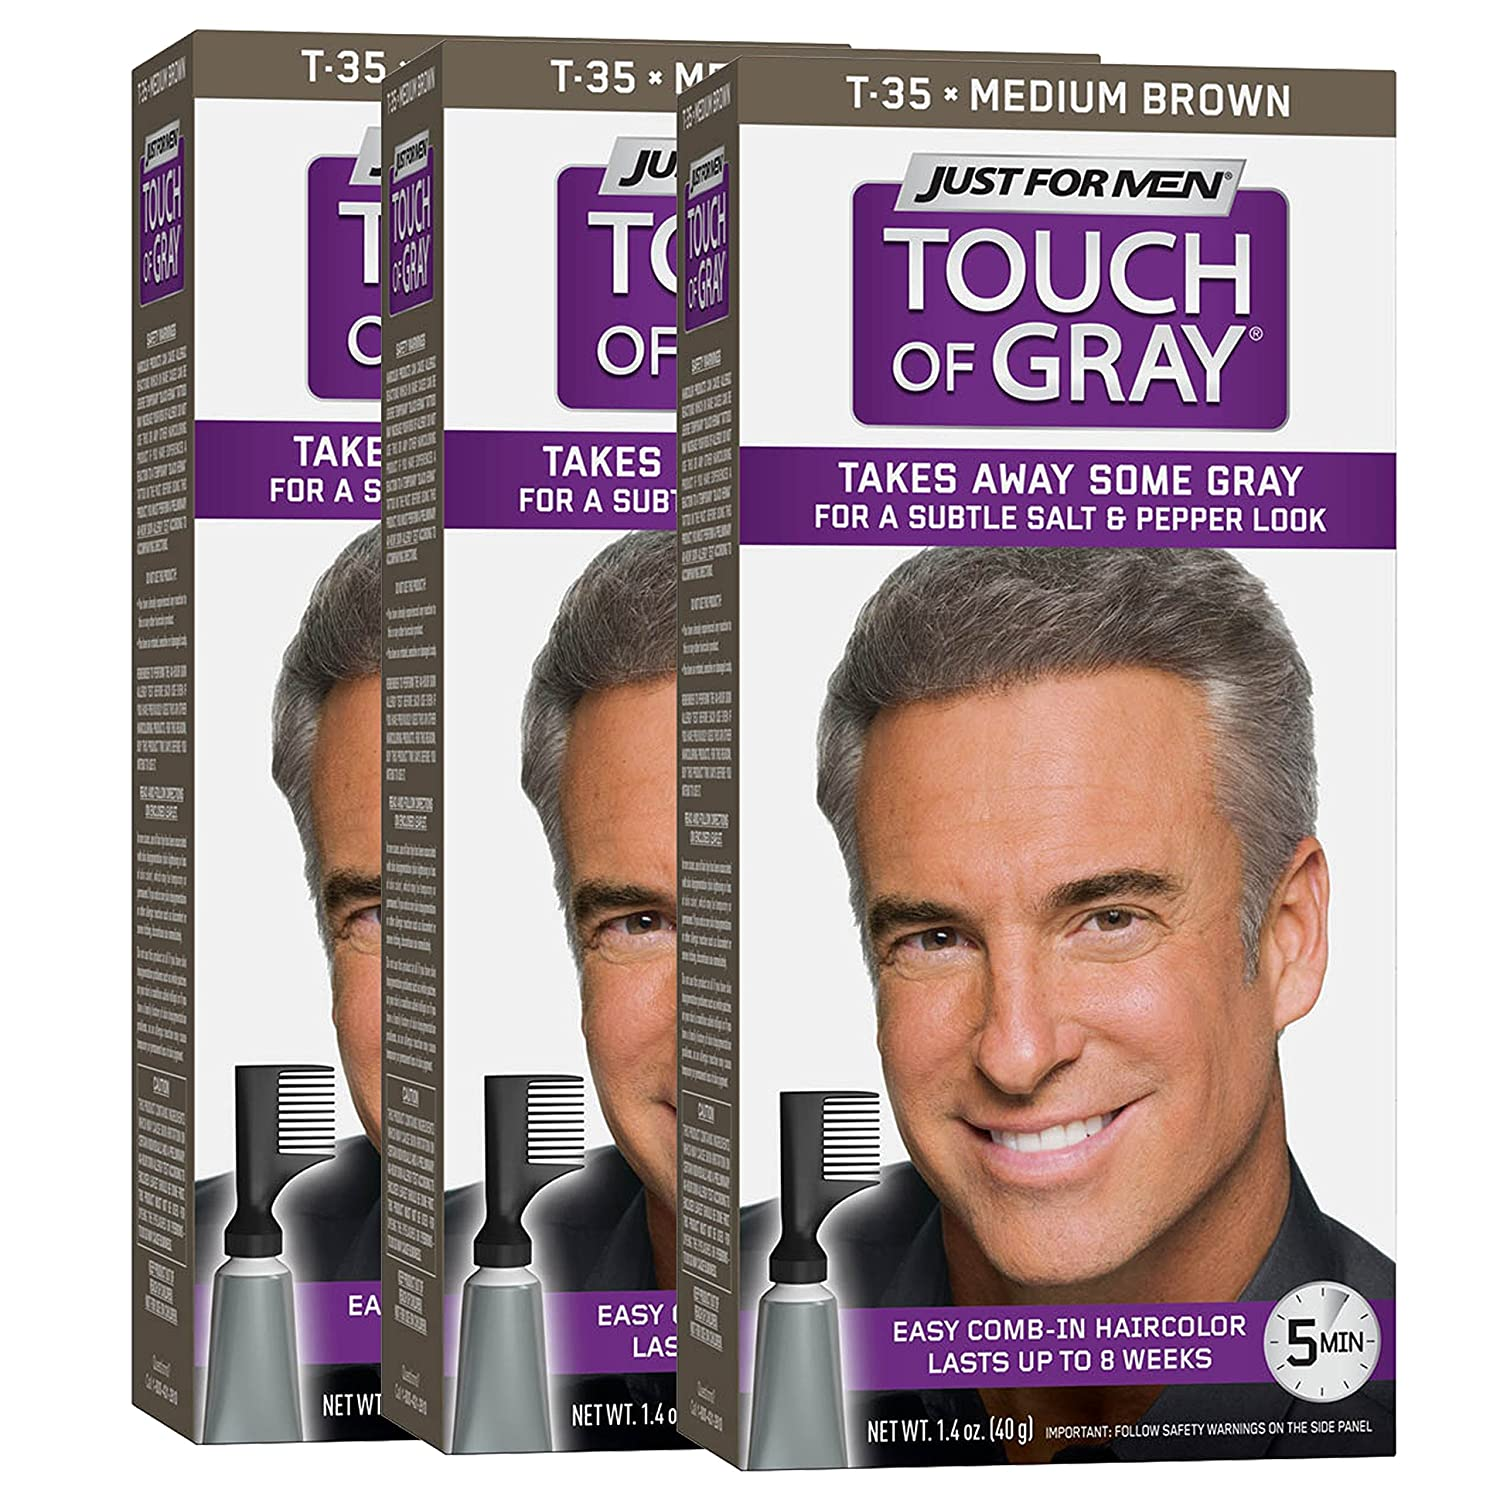 Just For Men Touch Of Gray Comb-In Men's Hair Color, Black 011509041388